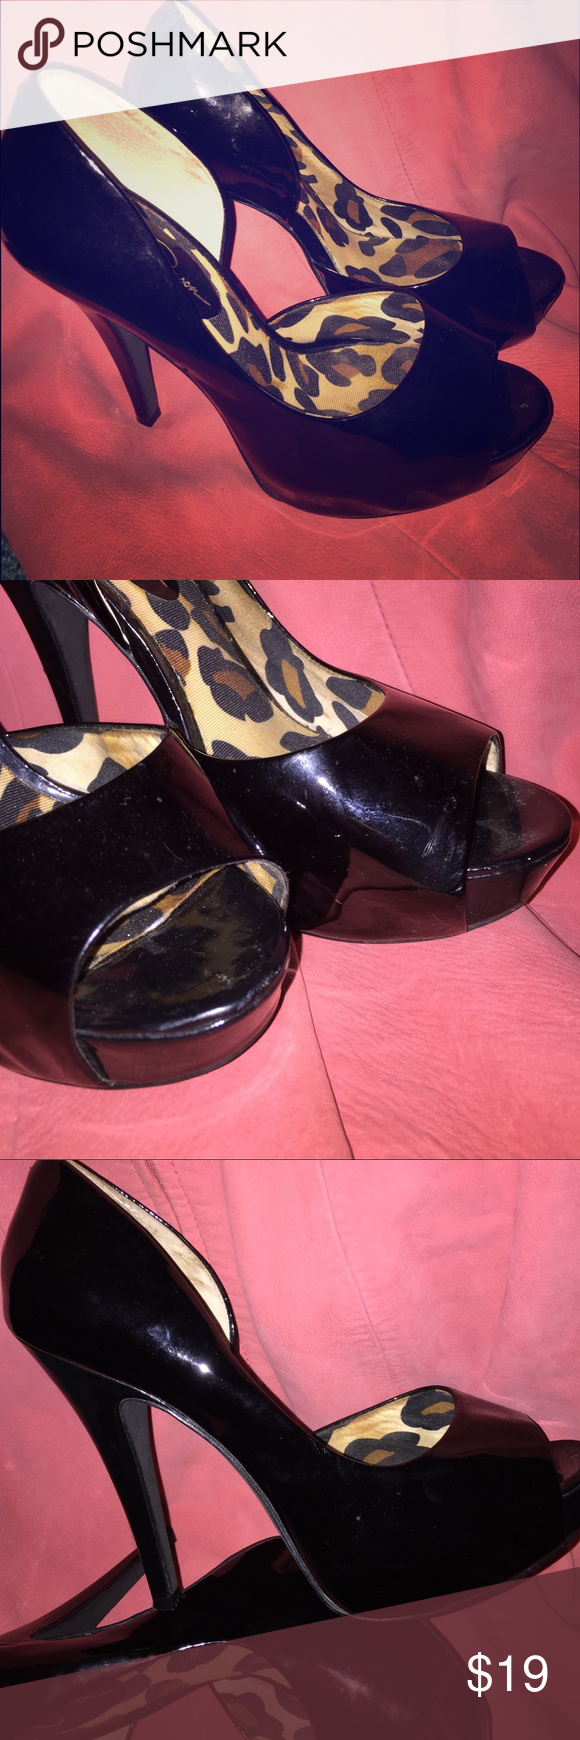 """Jessica Simpson pumps Preloved. Good condition. Faux patent leather. Open toe platform pump. Super comfy. Super sexy. I believe they are 3-4"""" heels. 1"""" platform. Jessica Simpson Shoes Platforms"""